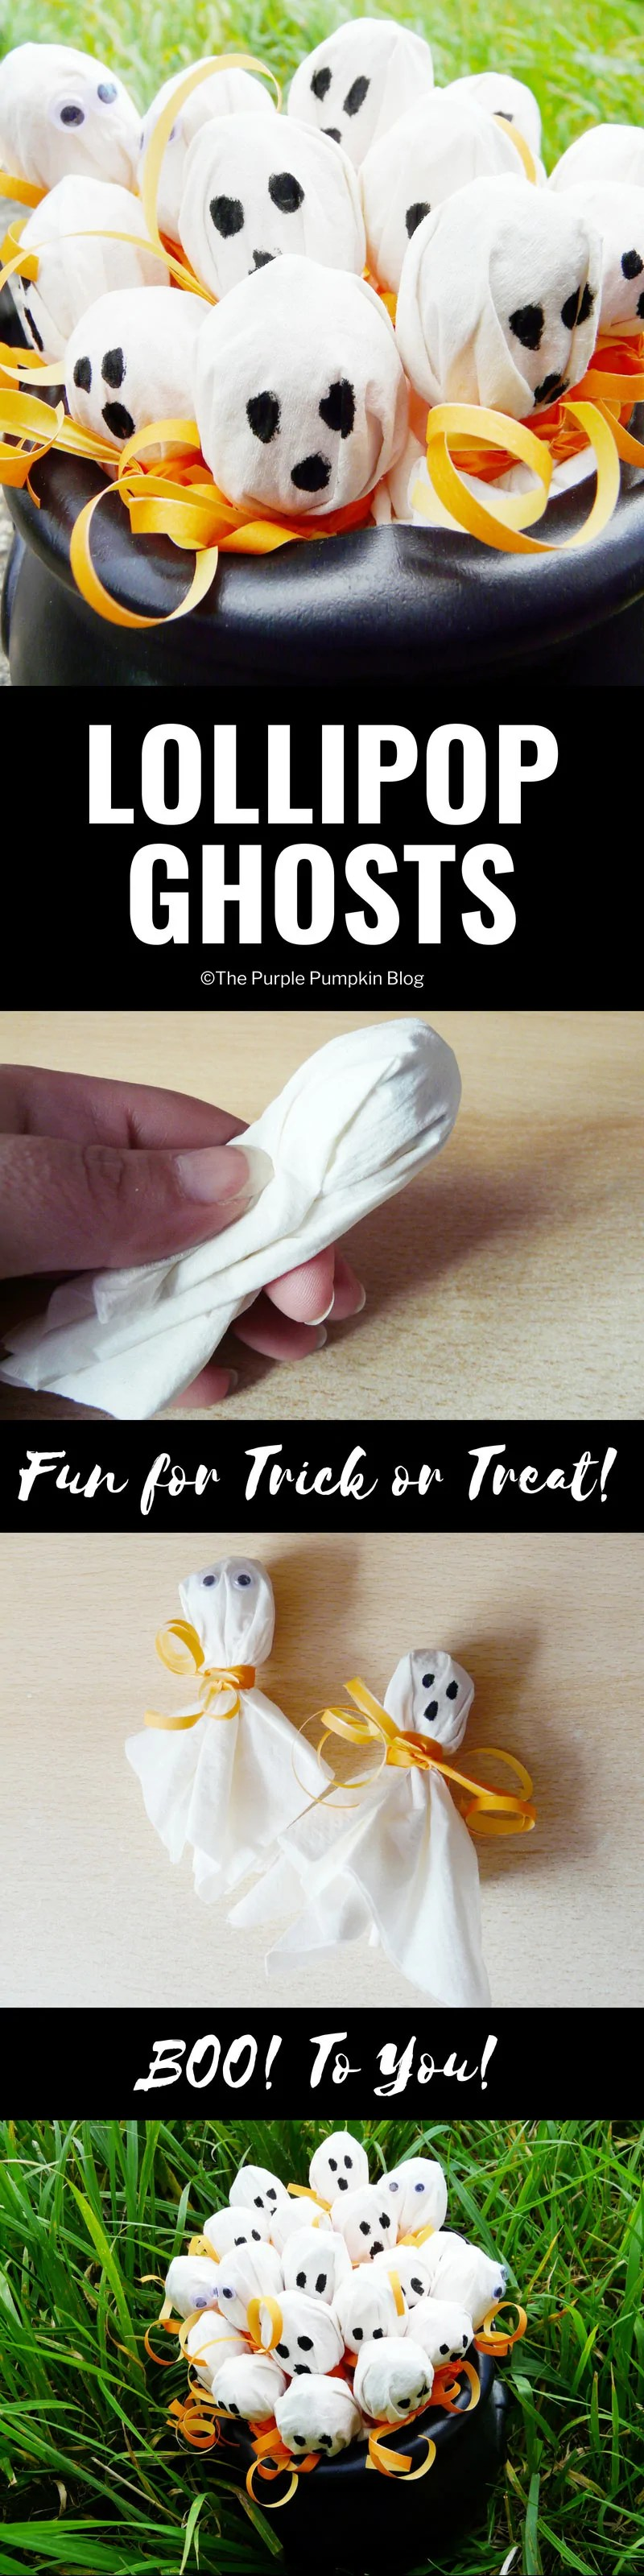 Lollipop Ghosts / Turn lollipops/suckers into cute little ghosts for Trick or Treaters! All you need are some white napkins, ribbon and a black marker pen! And of course the candy!